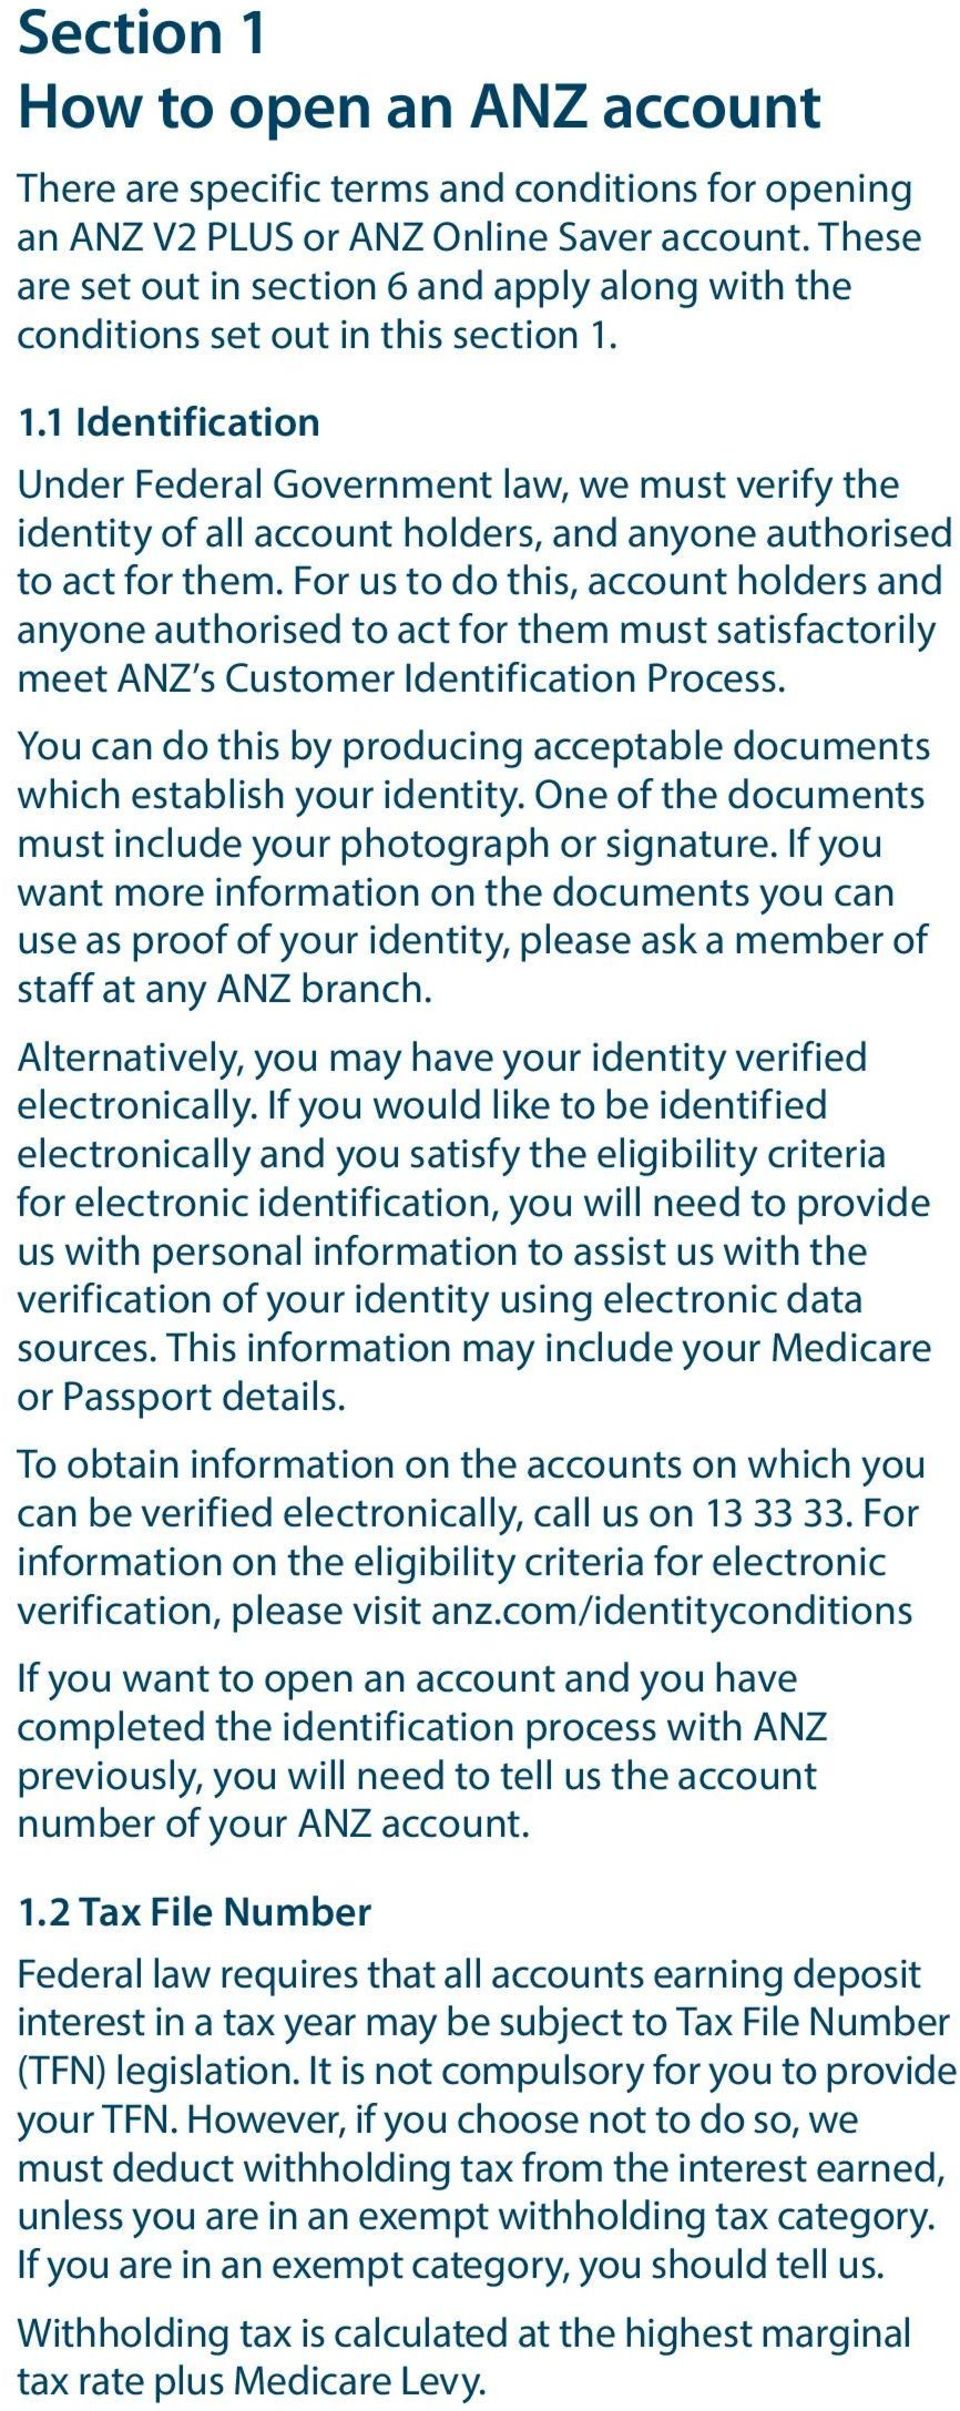 1.1 Identification Under Federal Government law, we must verify the identity of all account holders, and anyone authorised to act for them.